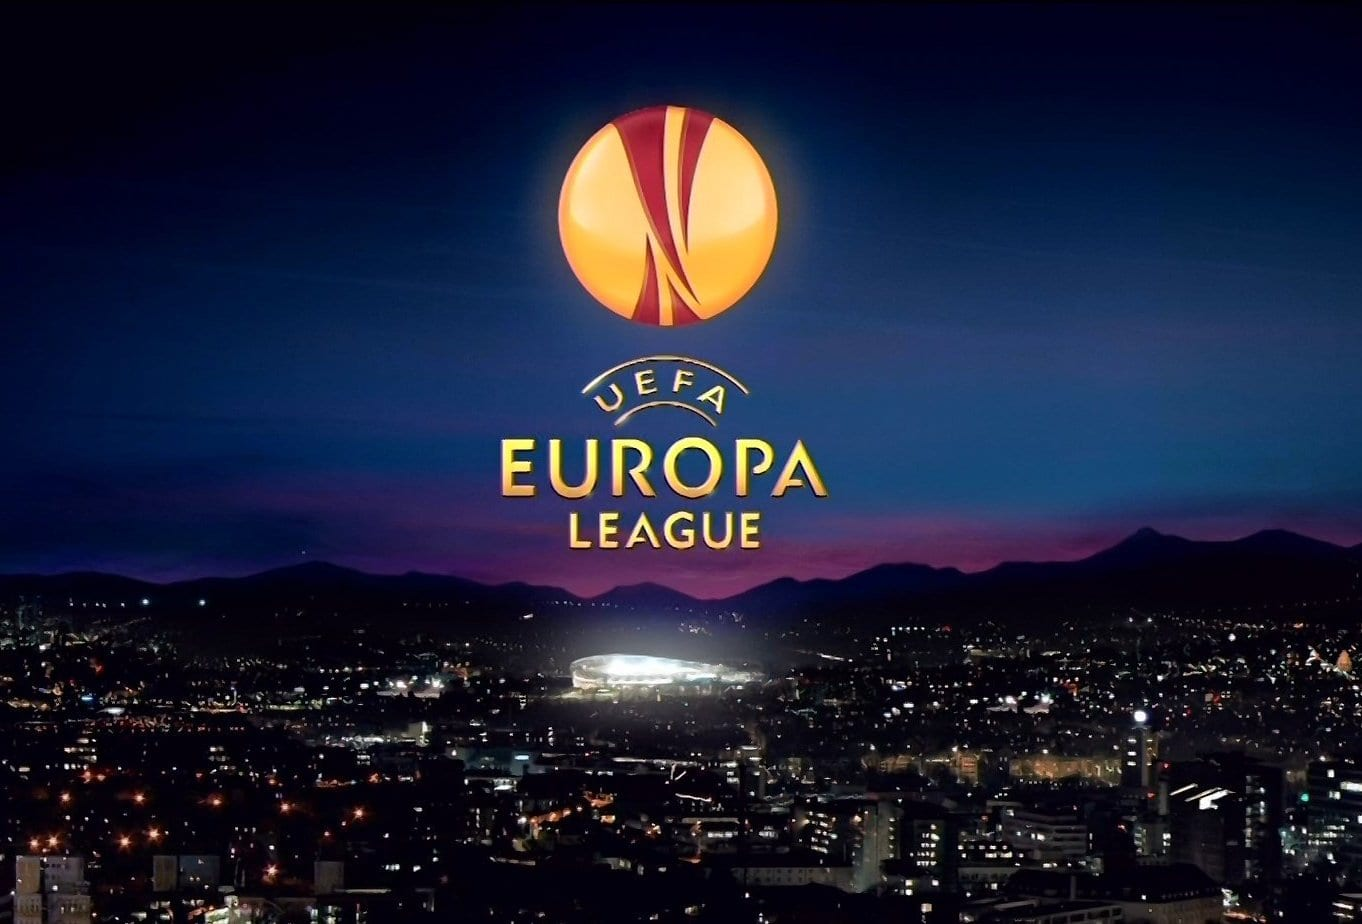 Europa League Stream Free